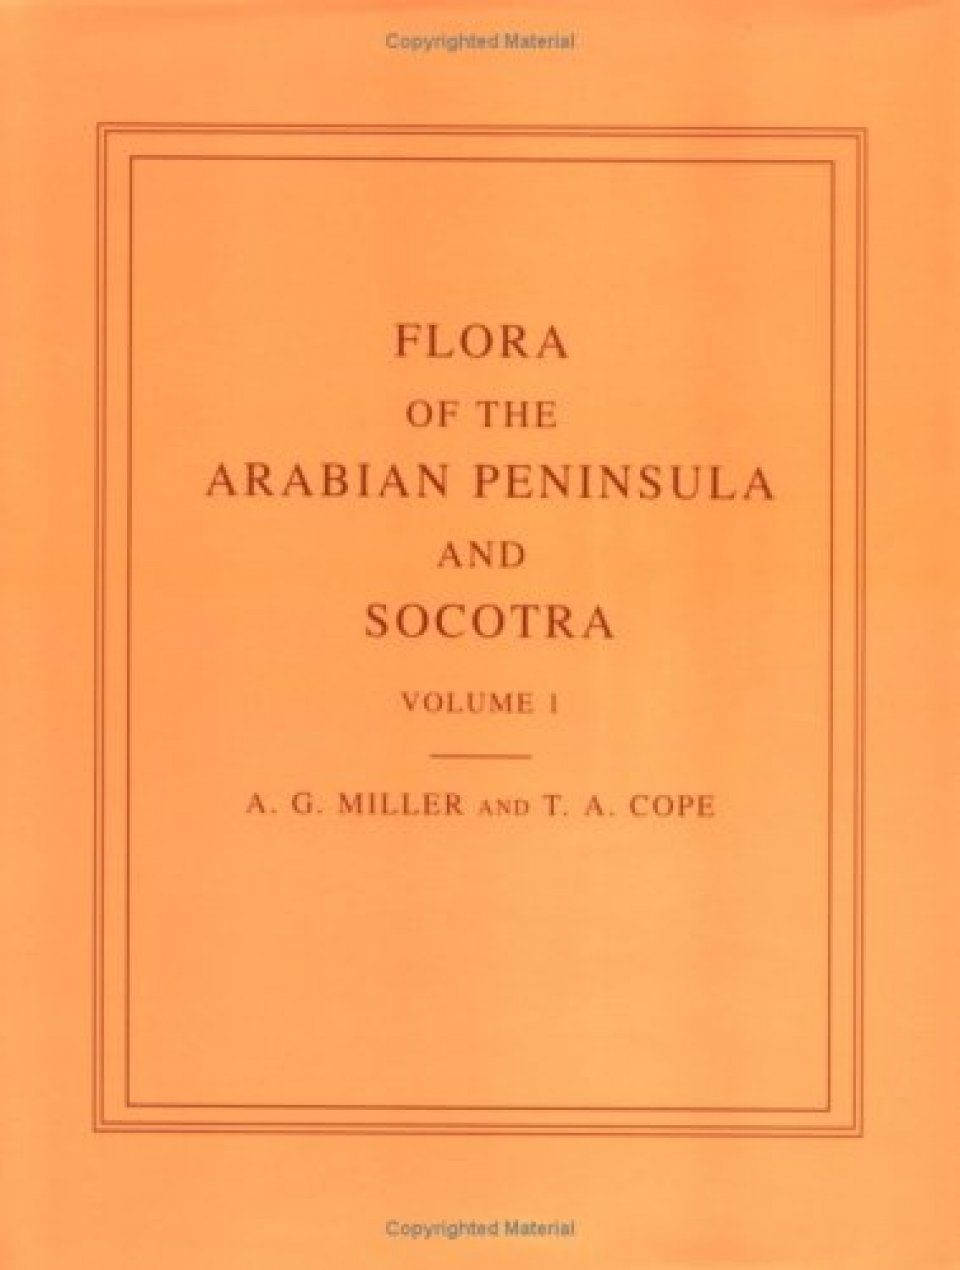 Flora of the Arabian Peninsula and Socotra: Volume 1